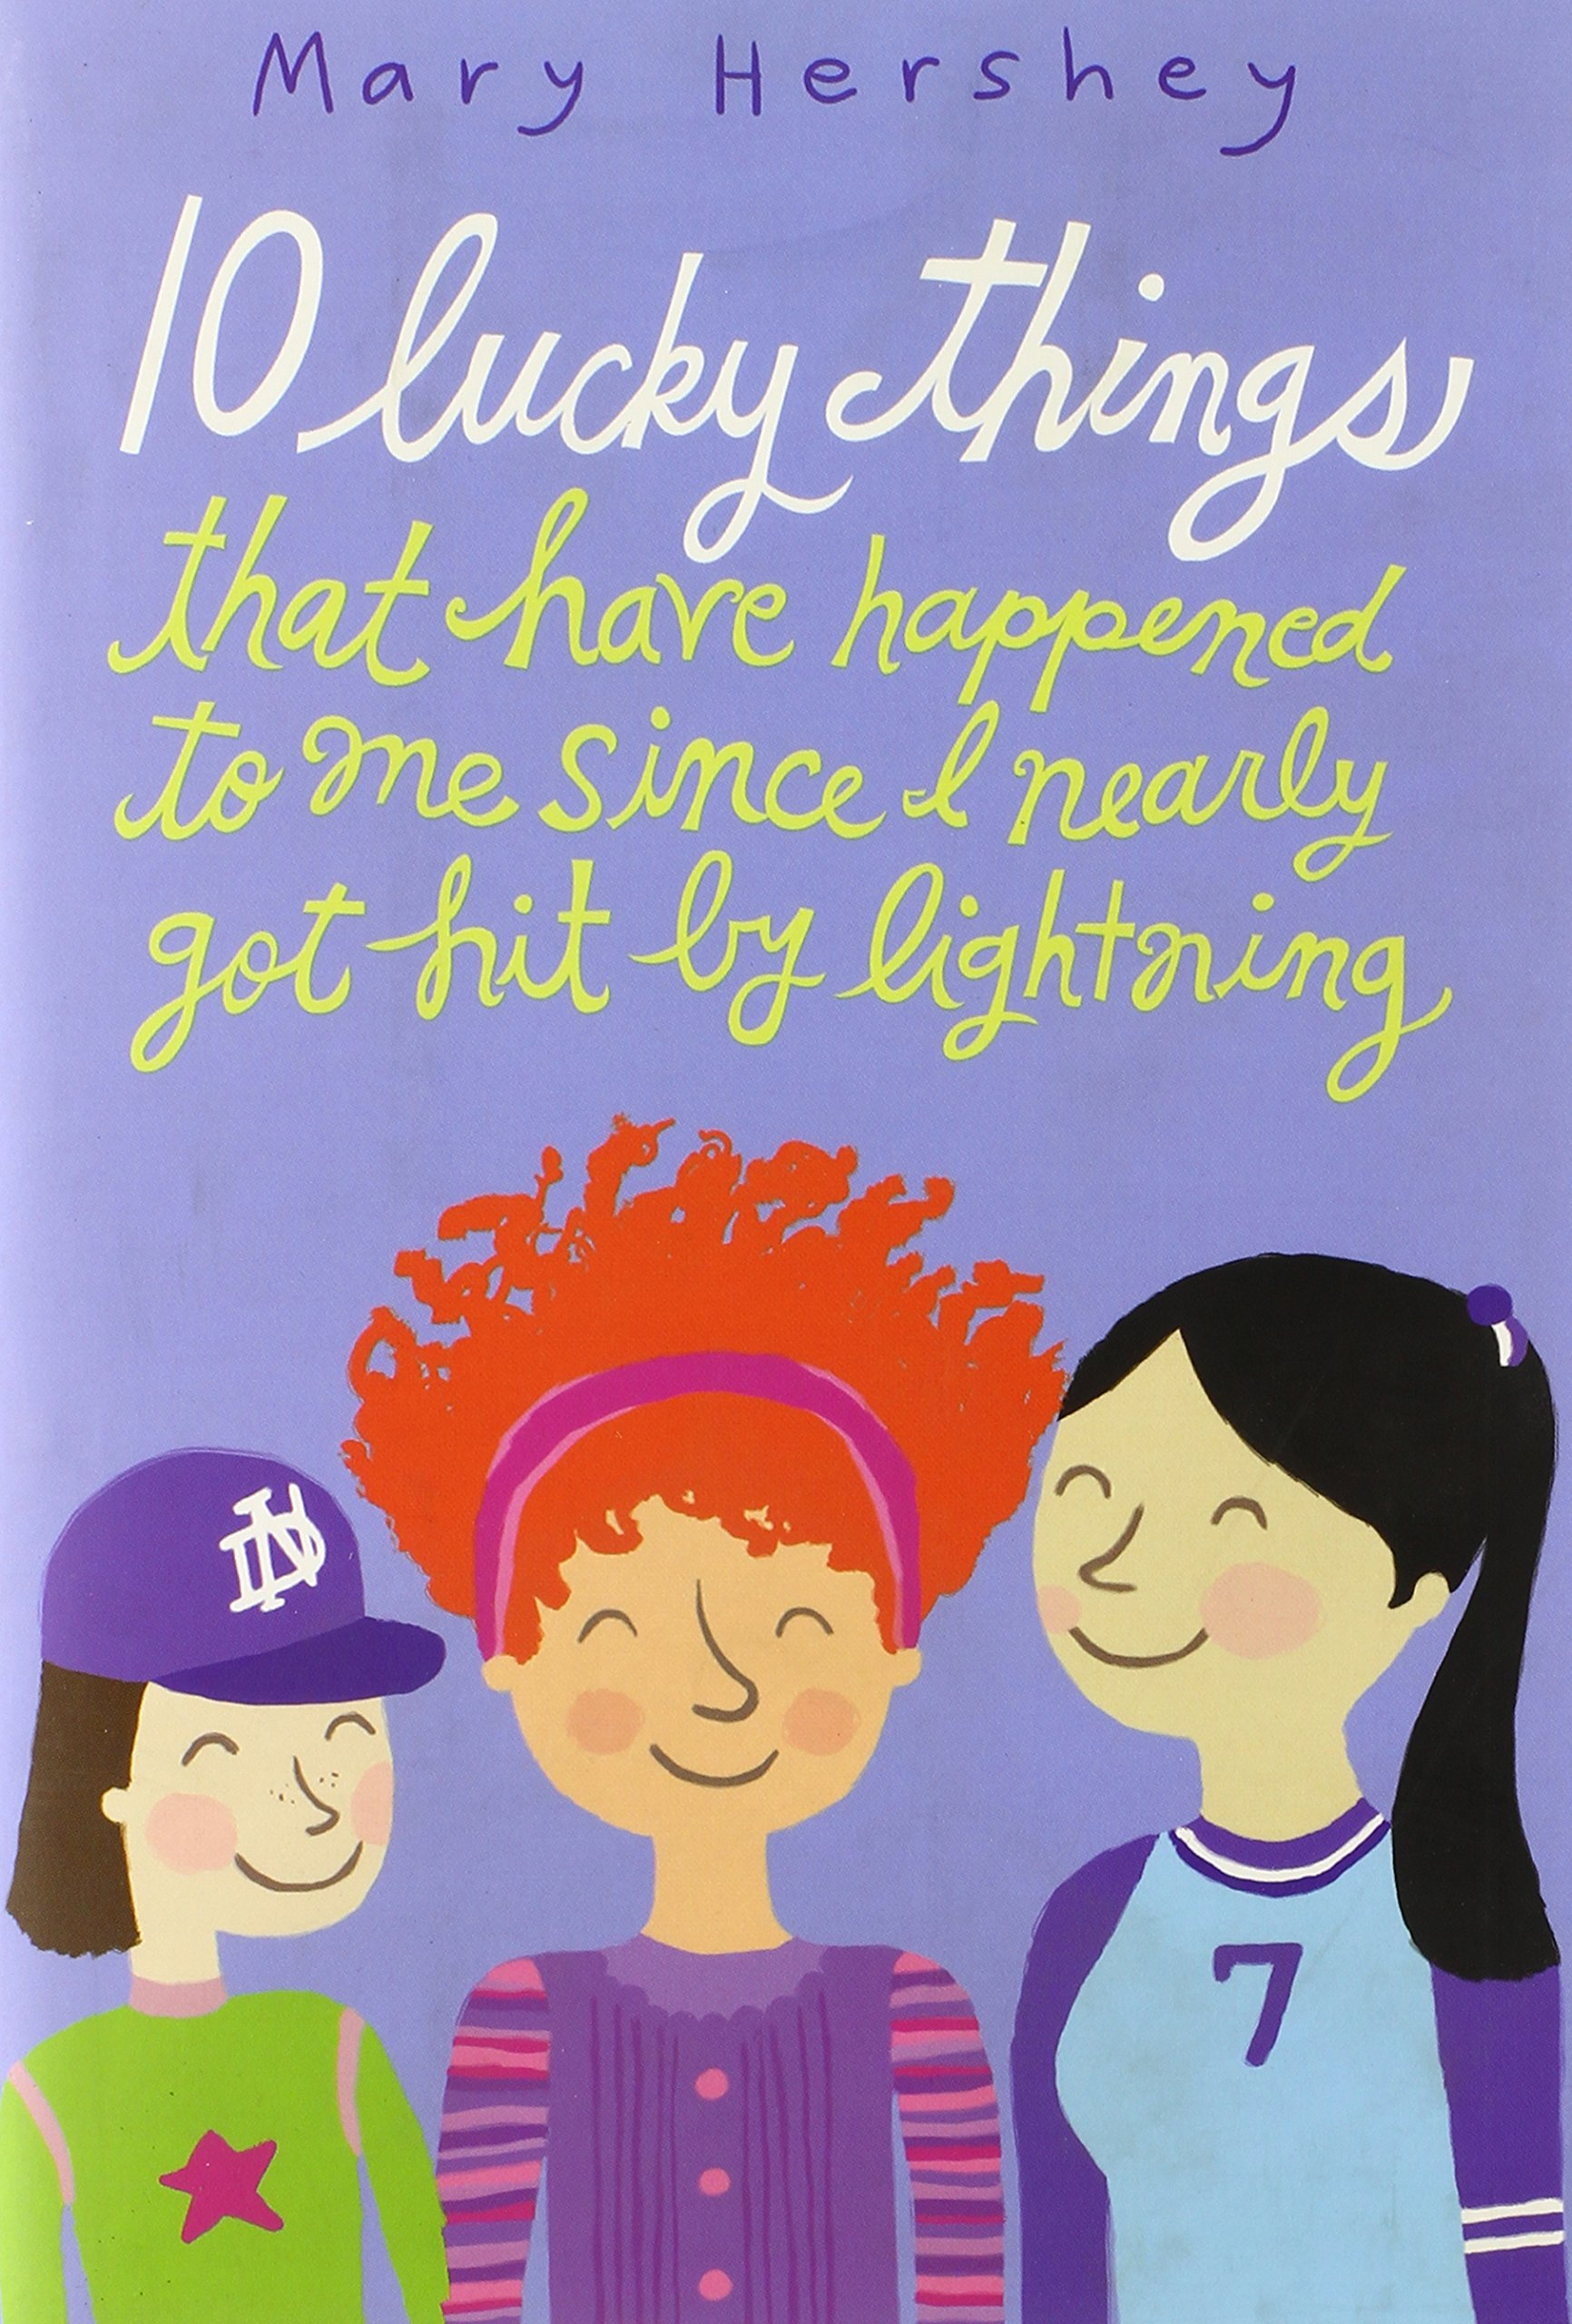 Read Online 10 Lucky Things That Have Happened to Me Since I Nearly Got Hit by Lightning pdf epub